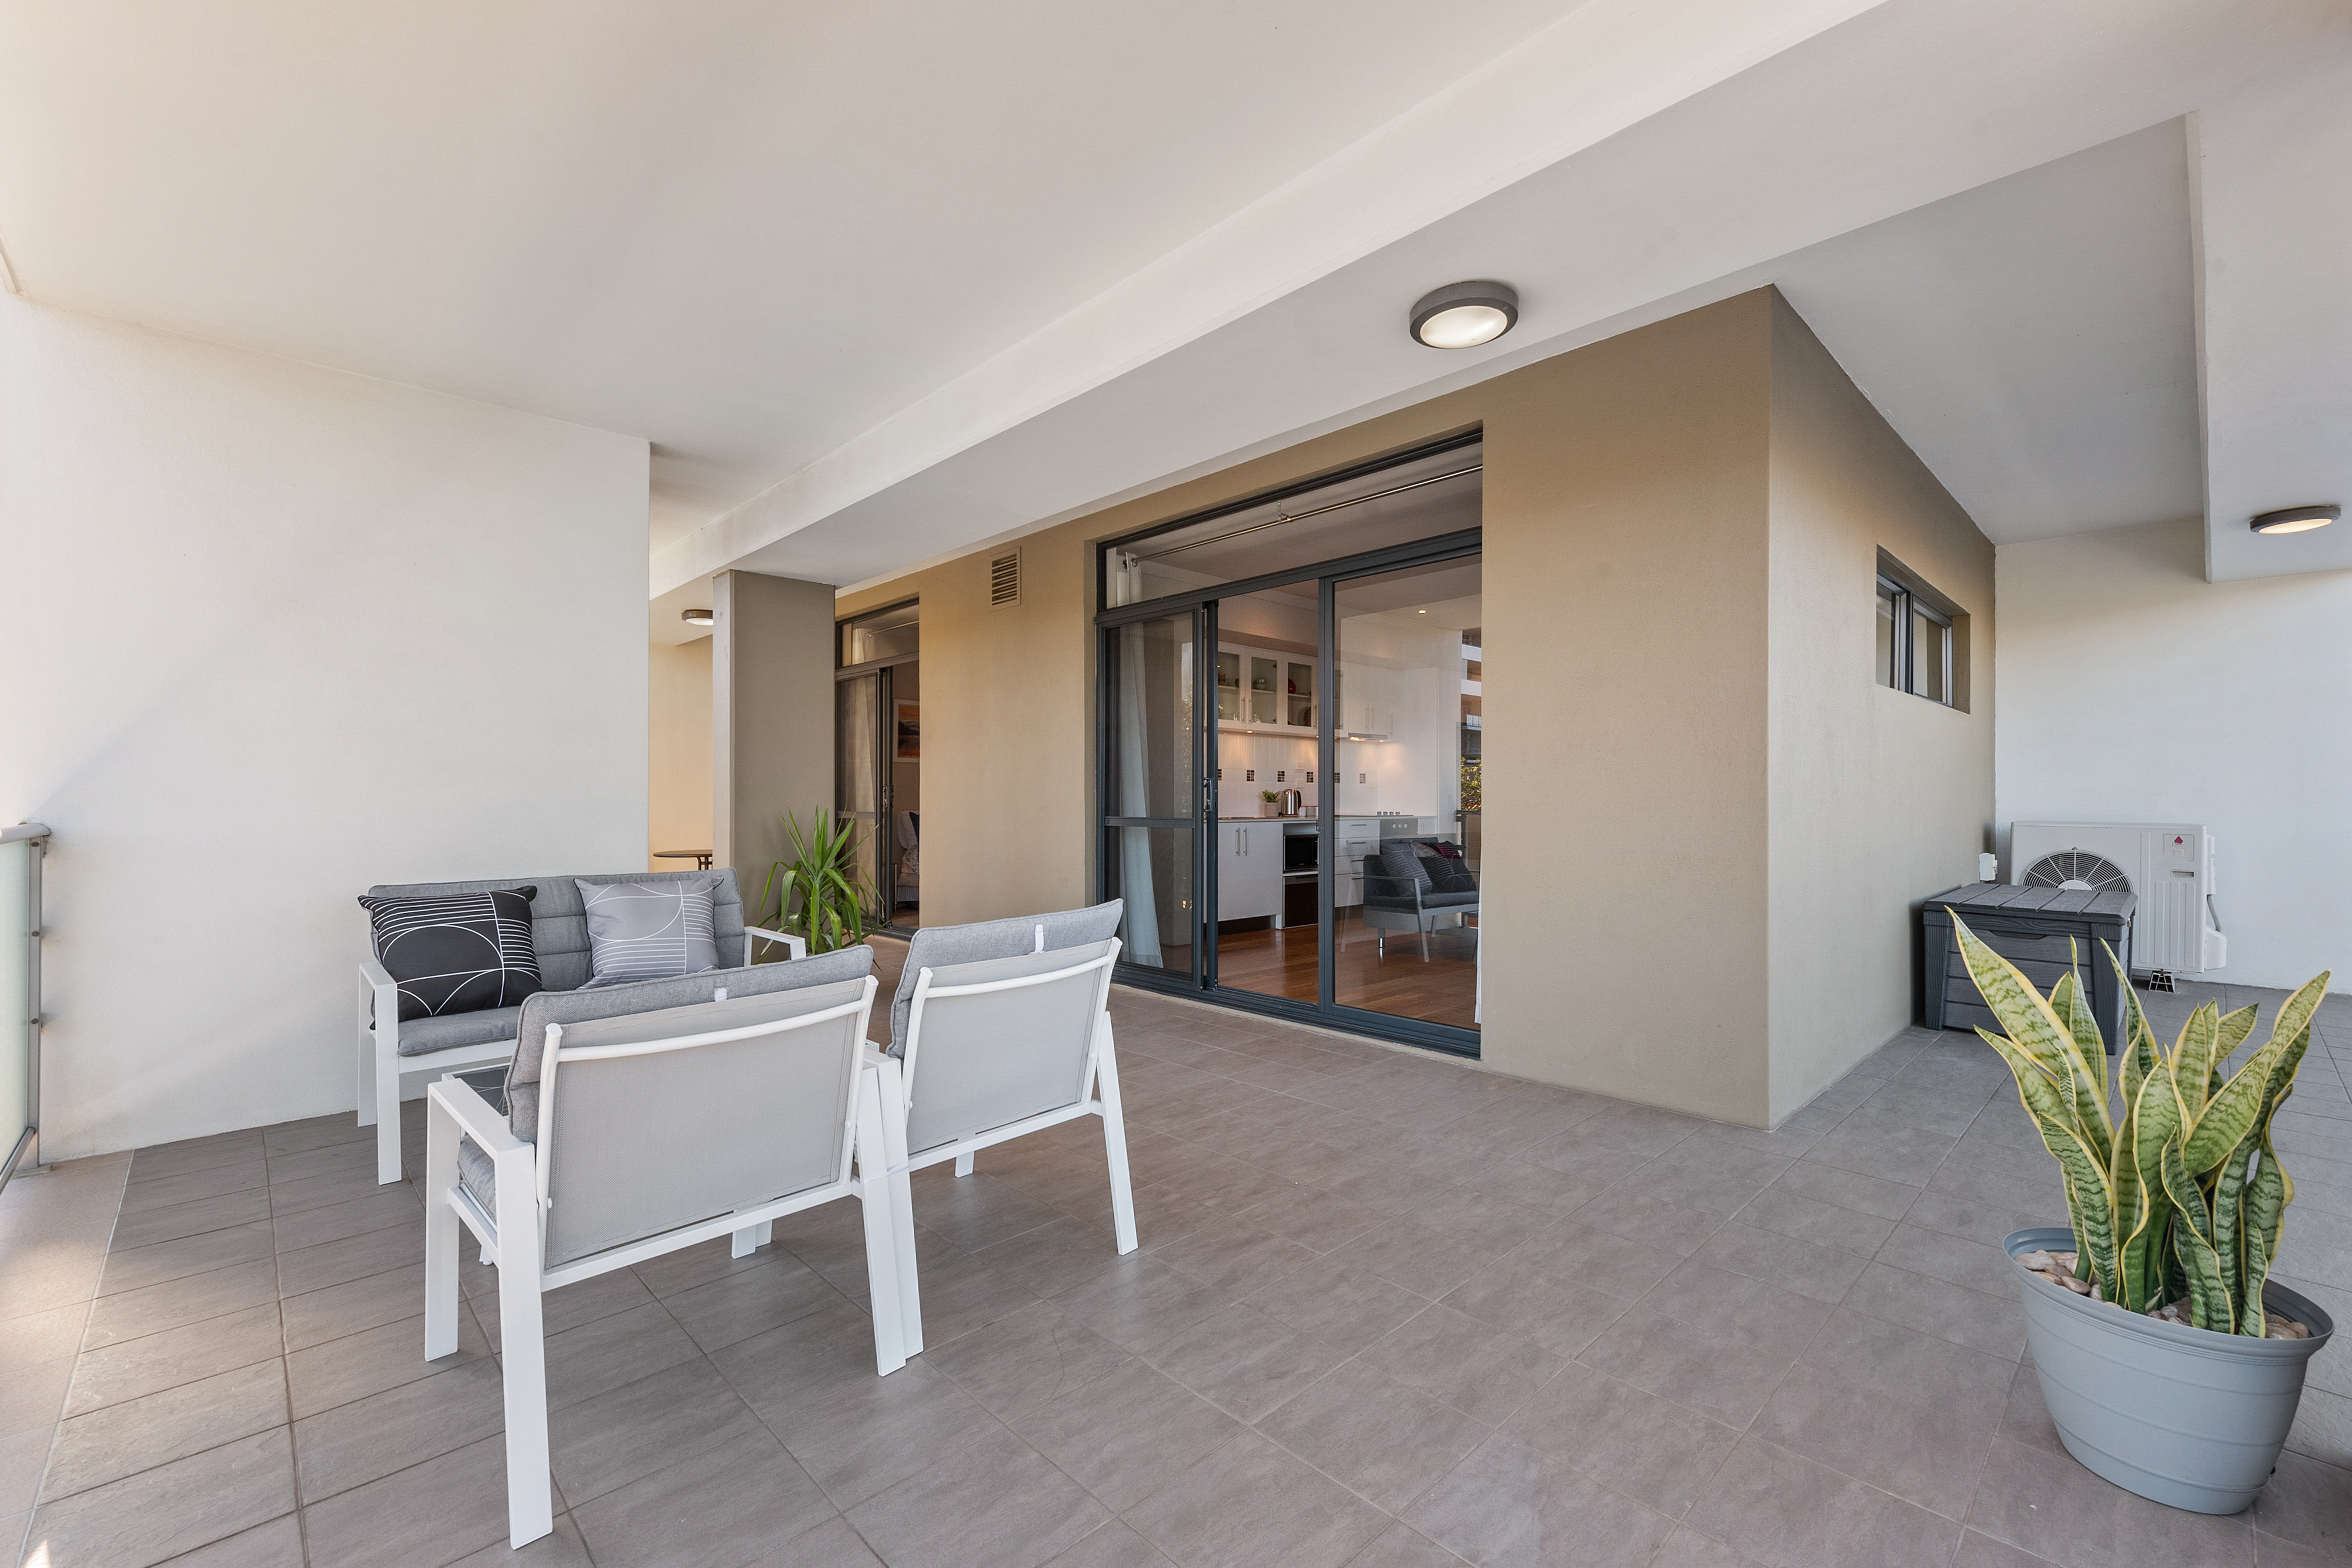 PRINT 202 48 Outram St, West Perth 19